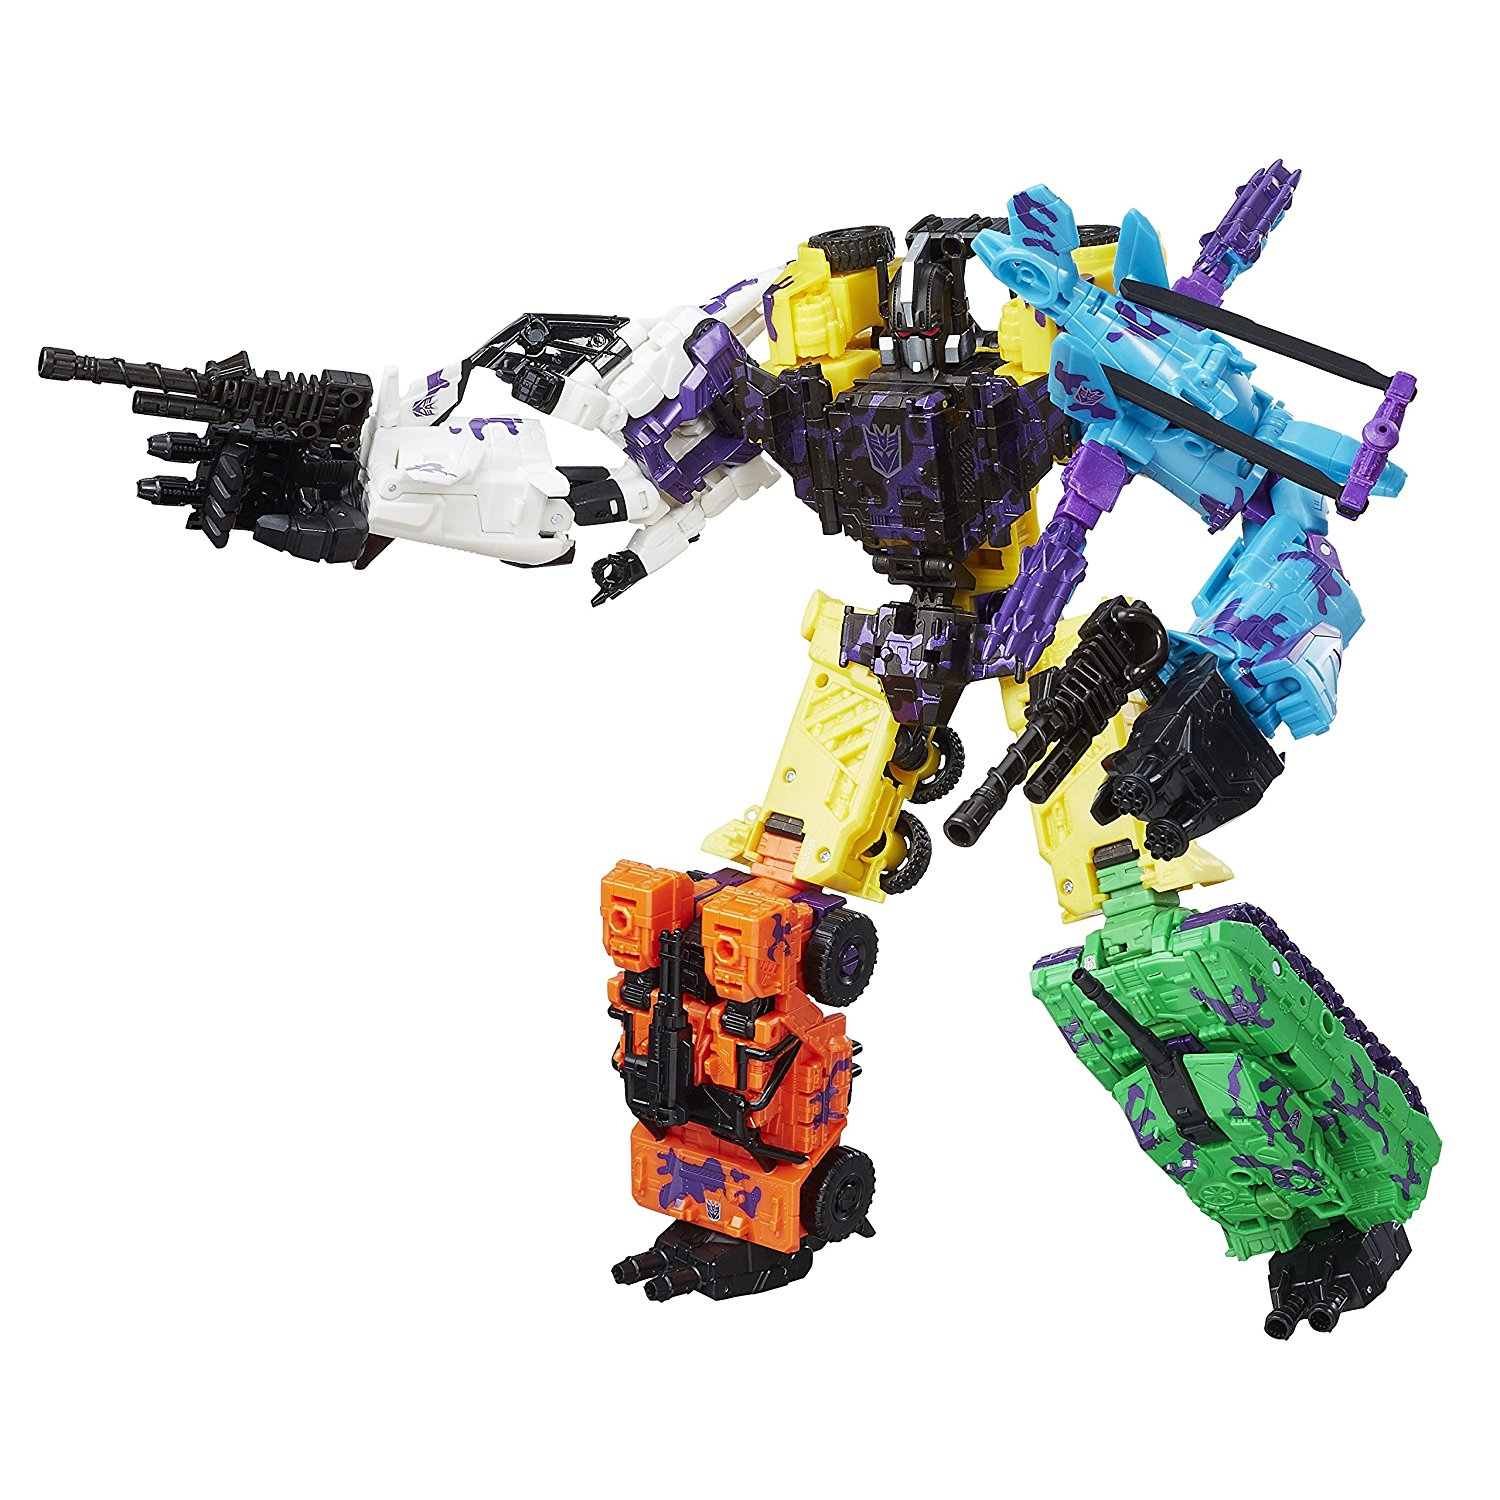 Transformers Generations Combiner Wars Bruticus Collection Pack by Hasbro